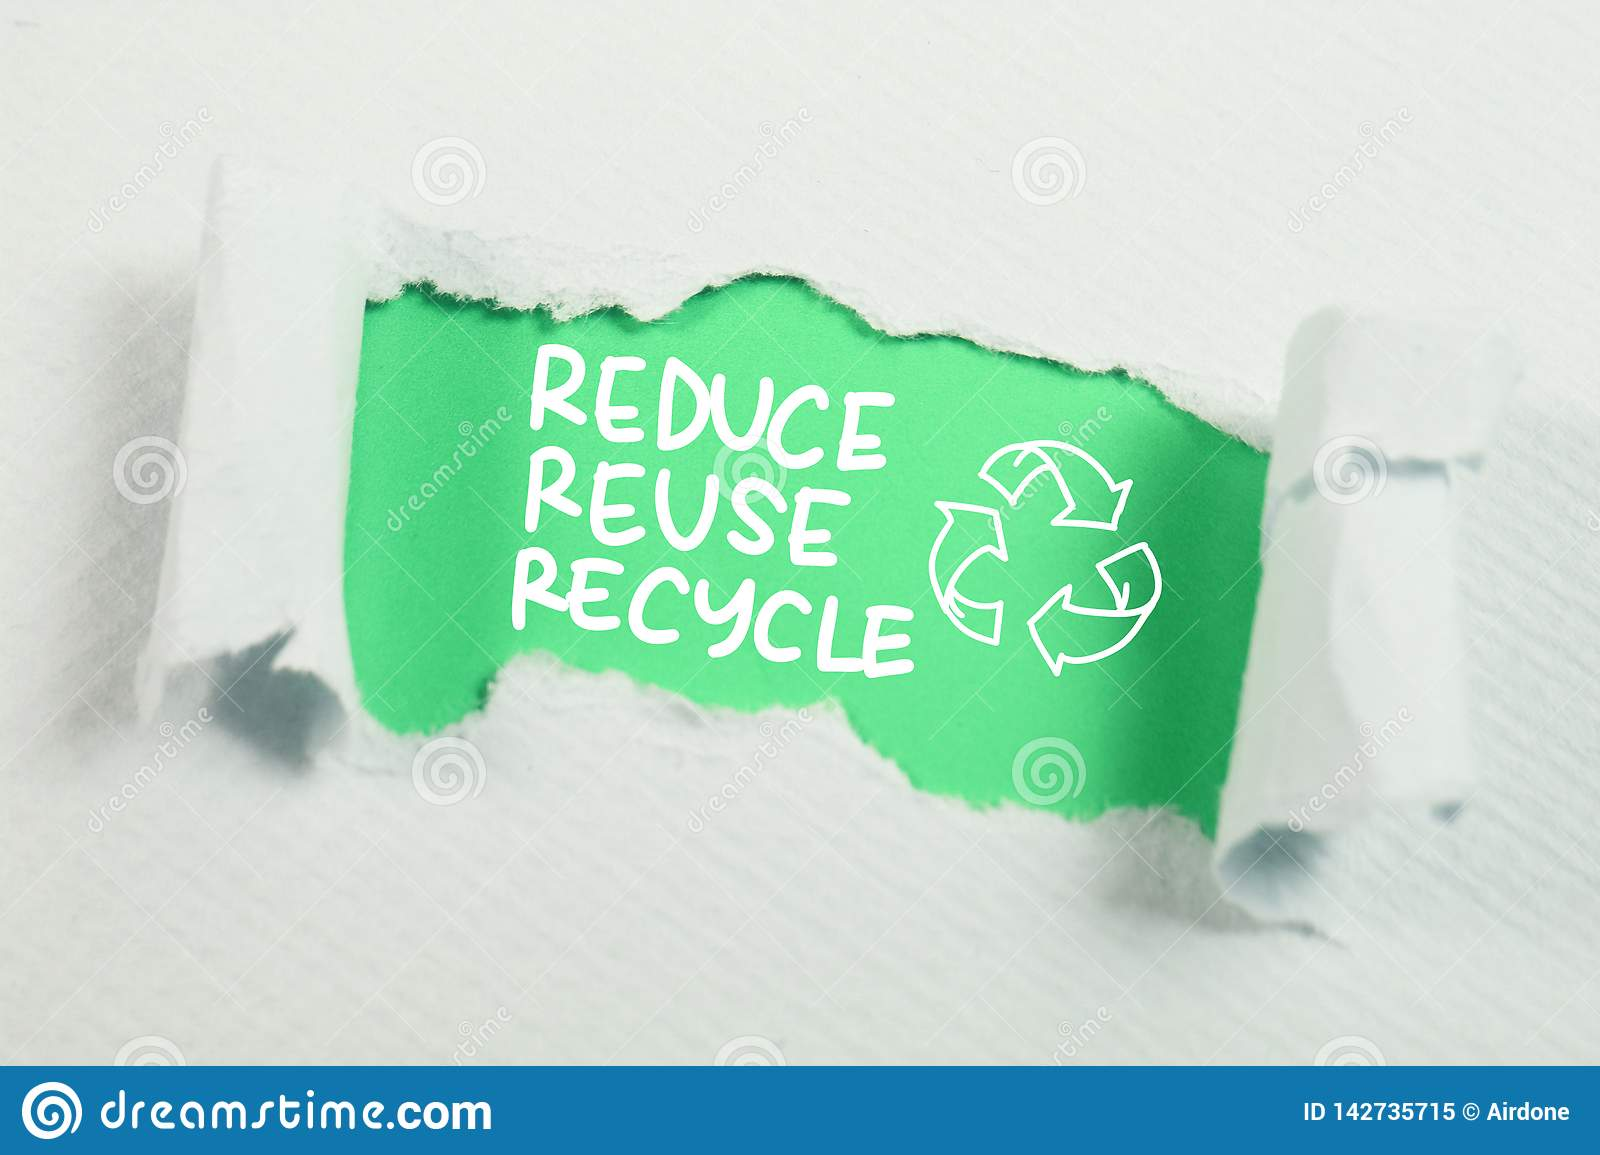 reduce reuse recycle motivational words quotes concept stock